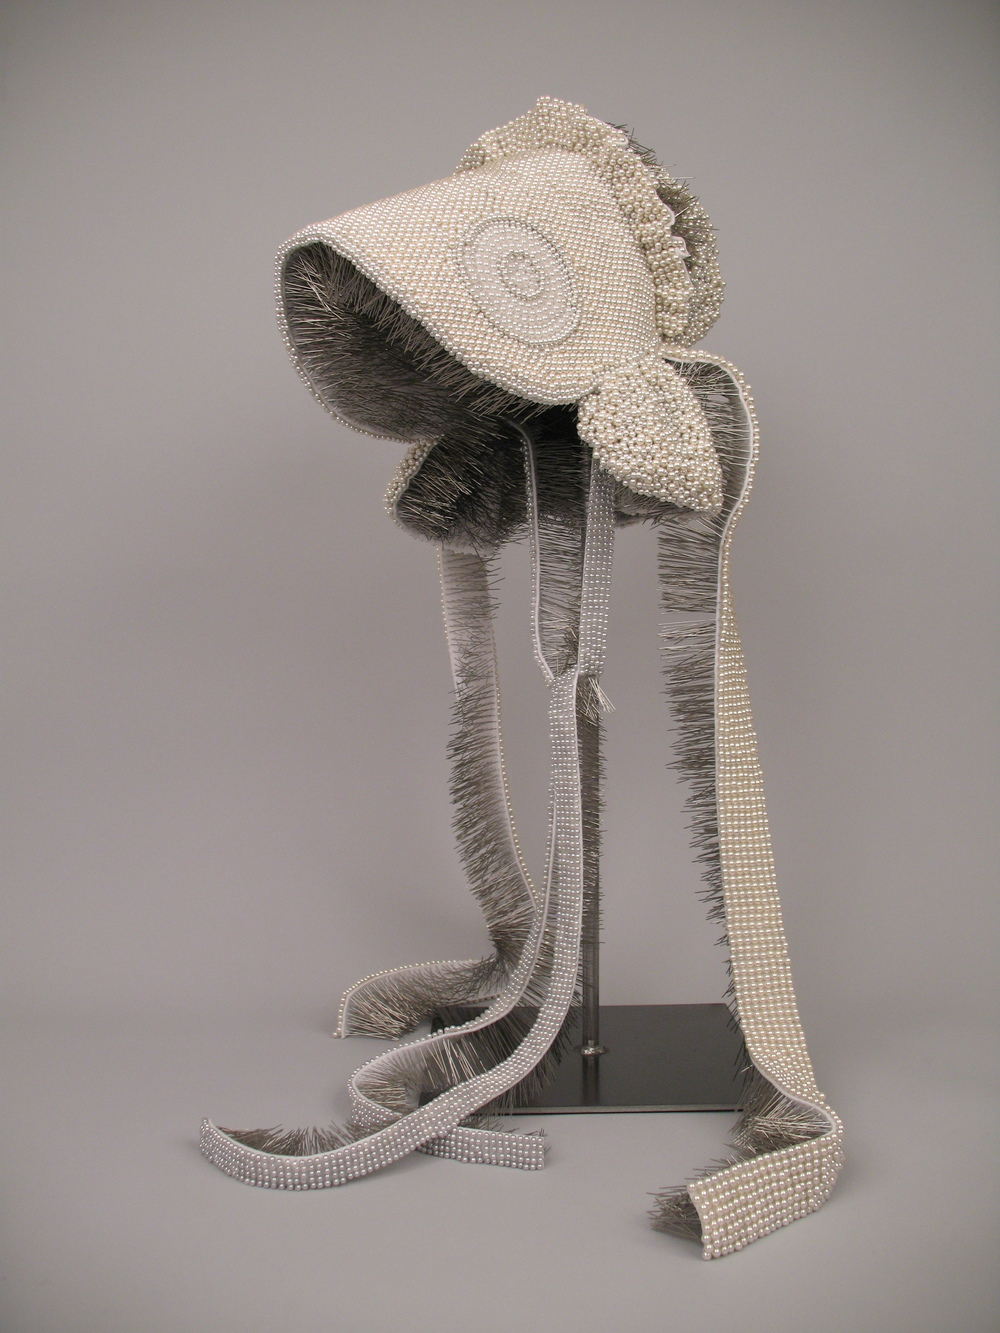 "Seer Bonnet XIII (Mary)  20,269 pearl corsage pins, fabric, steel, 28.5"" x 12"" x 15"", 2010"